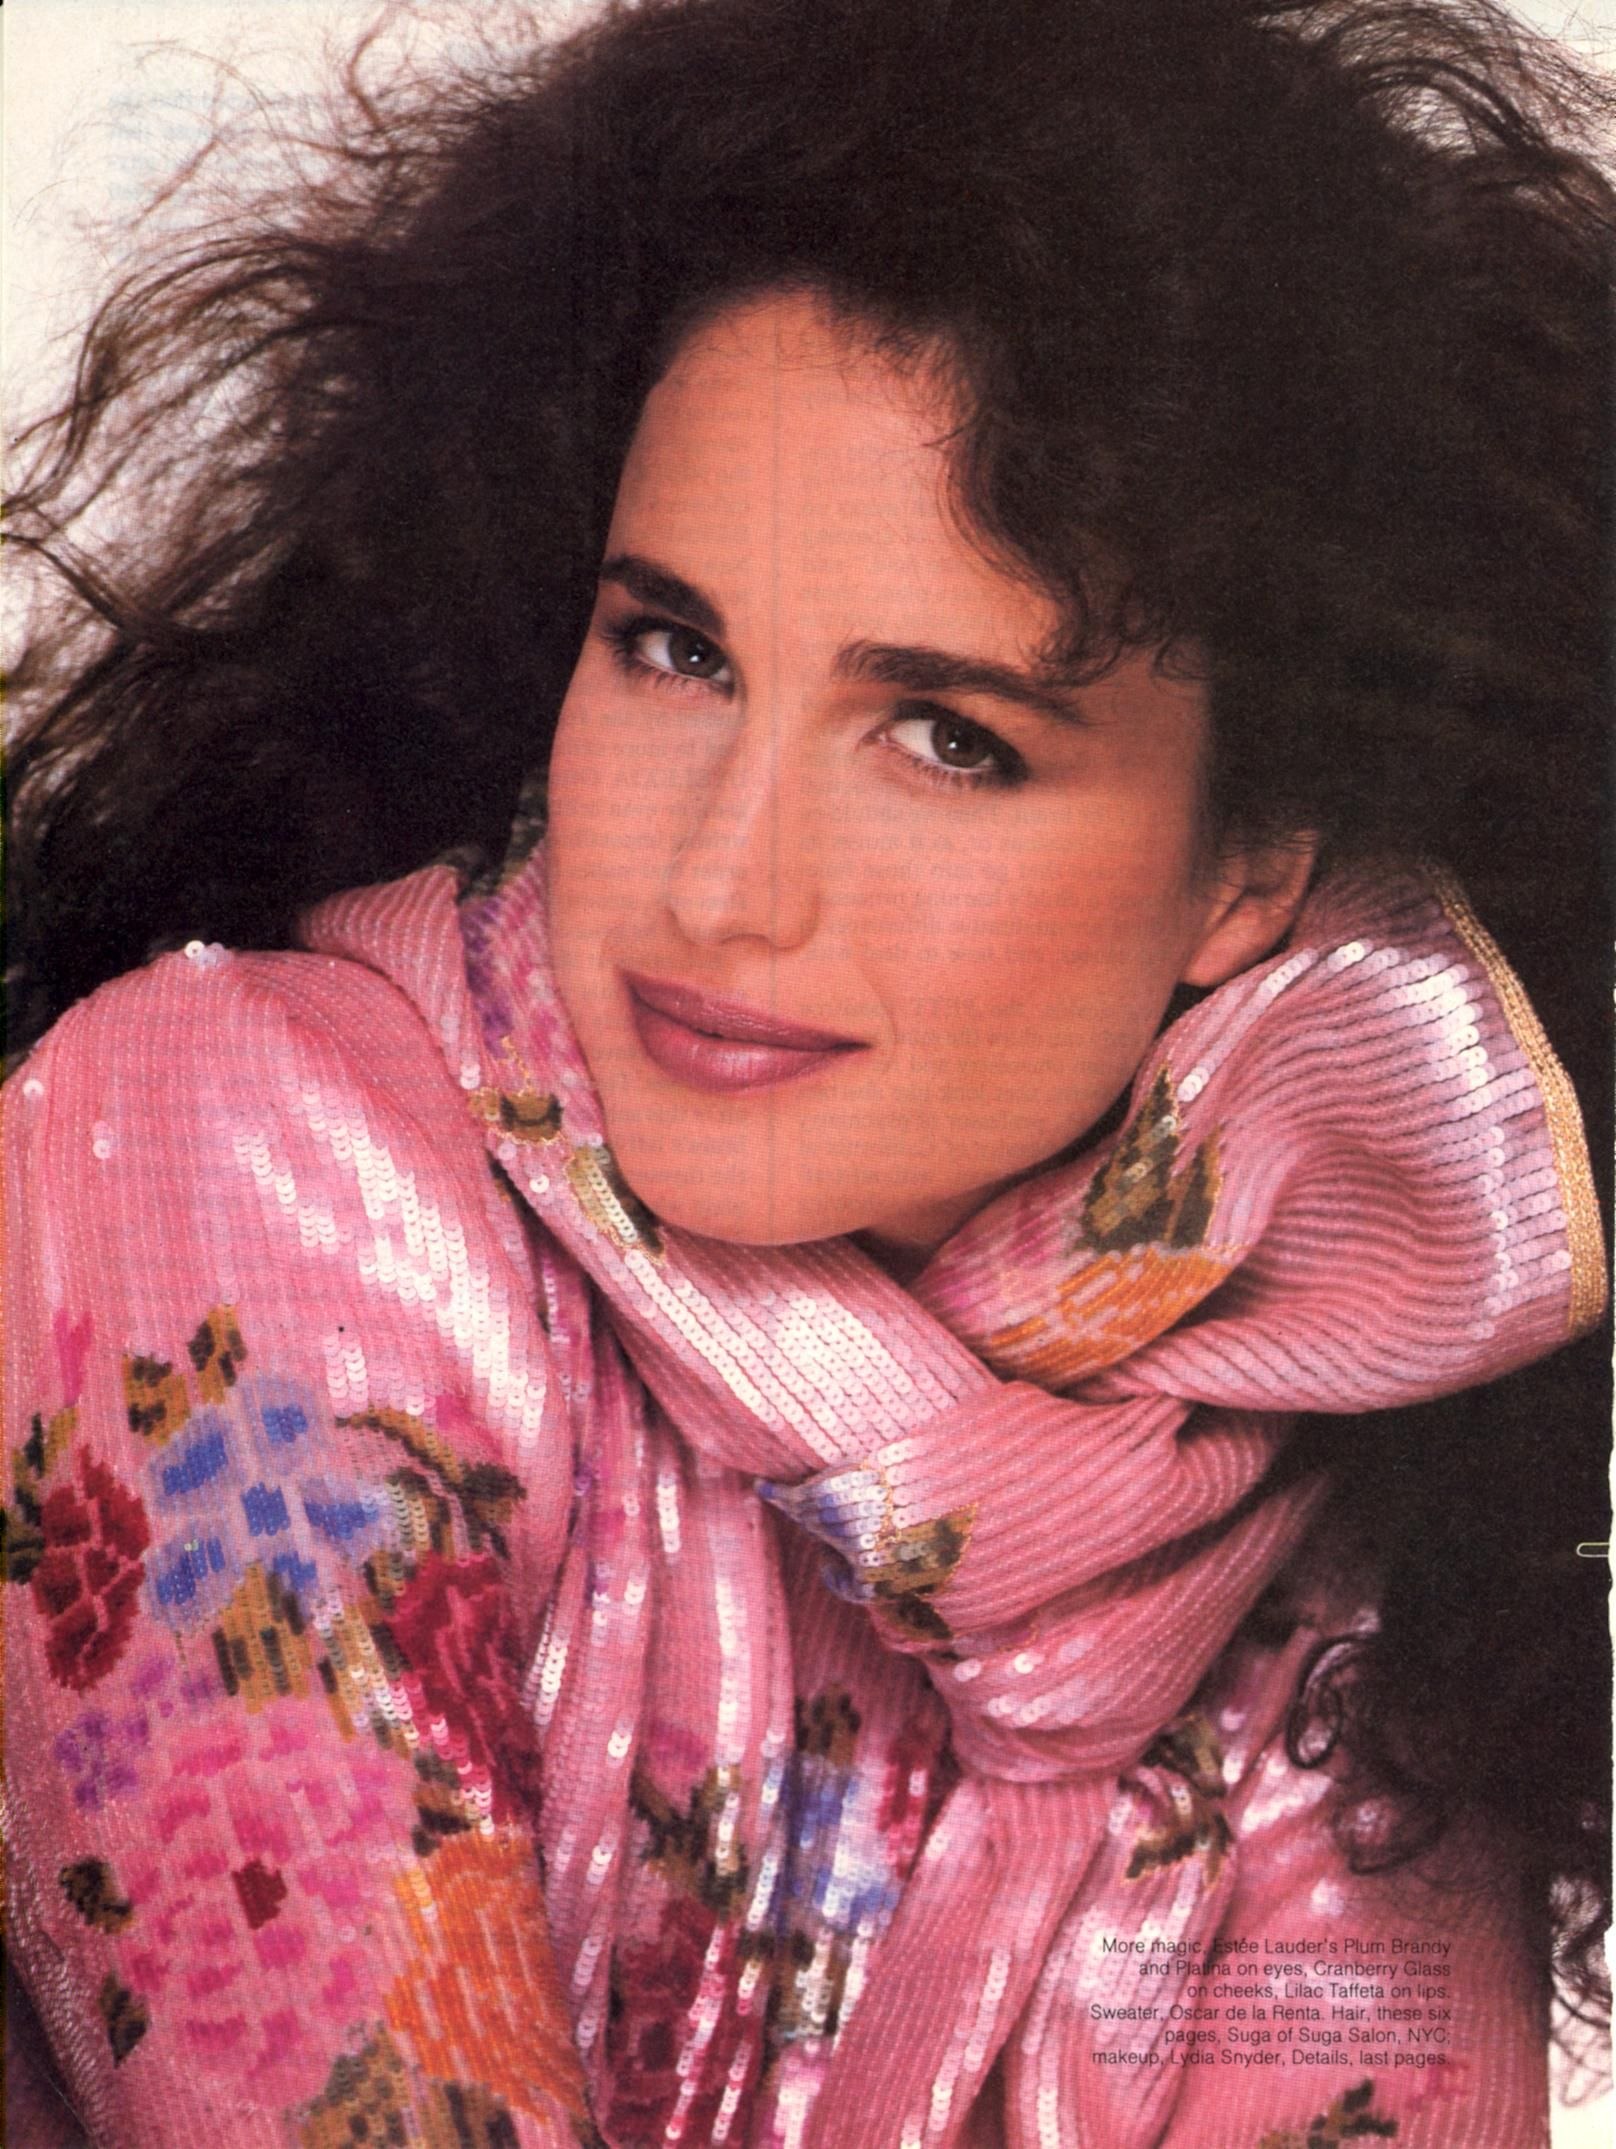 Andie Macdowell Bra Size splashdance '83 photo richard avedon model andie macdowell